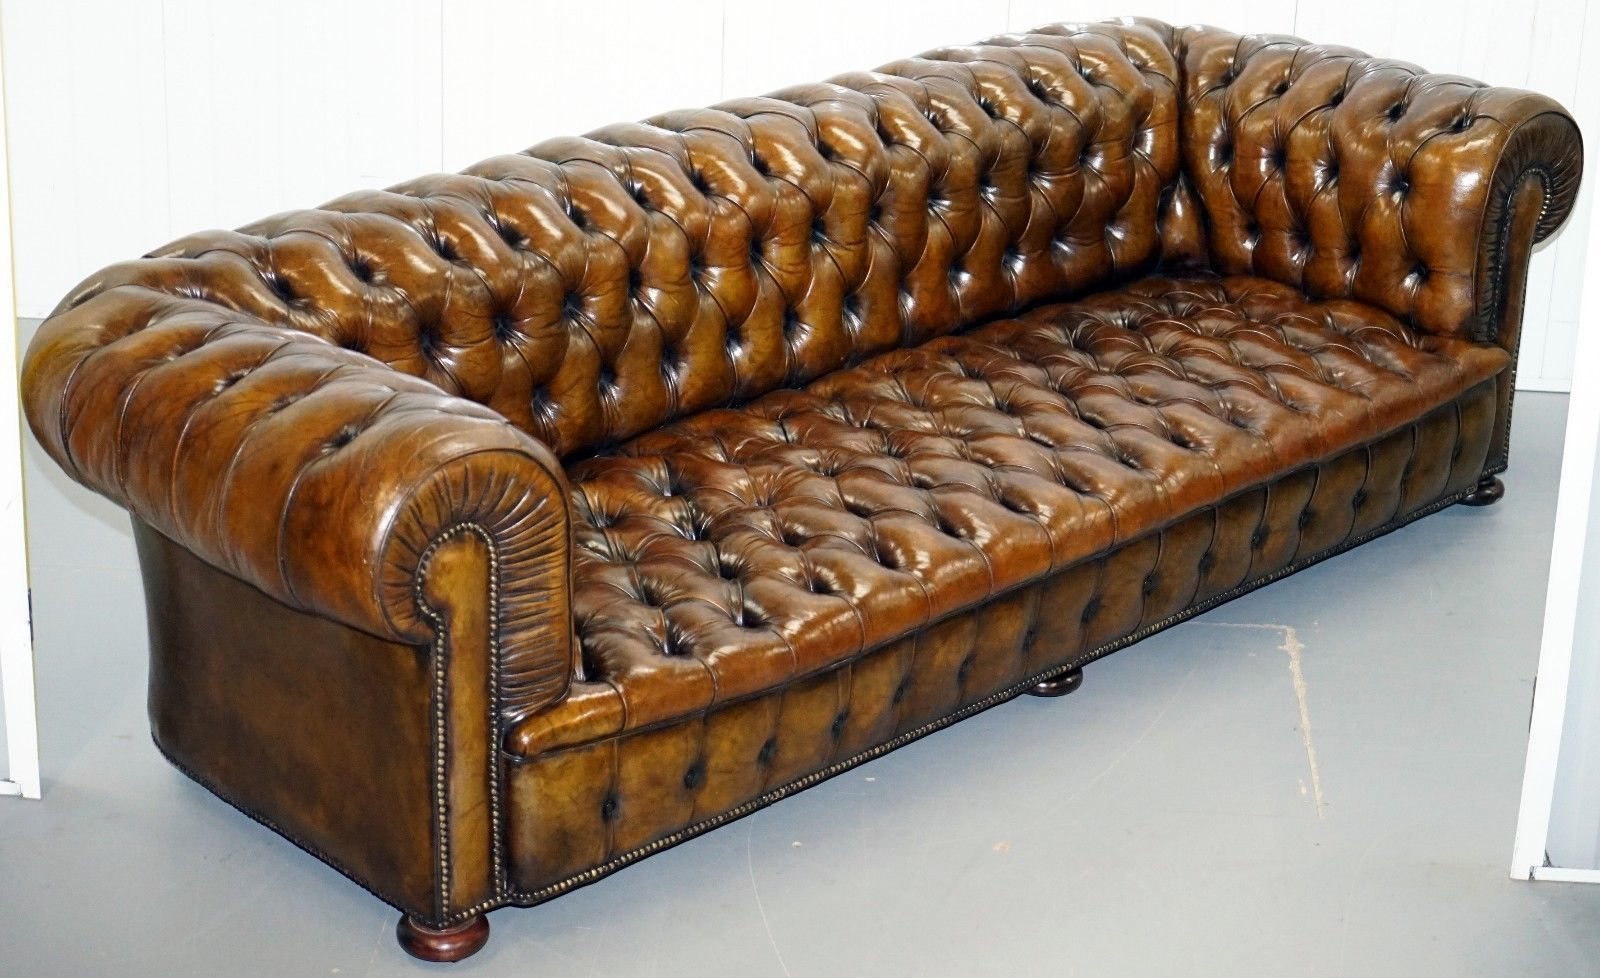 Awe Inspiring Huge Rare Victorian Horse Hair Fully Restored Brown Leather Chesterfield Sofa Pabps2019 Chair Design Images Pabps2019Com